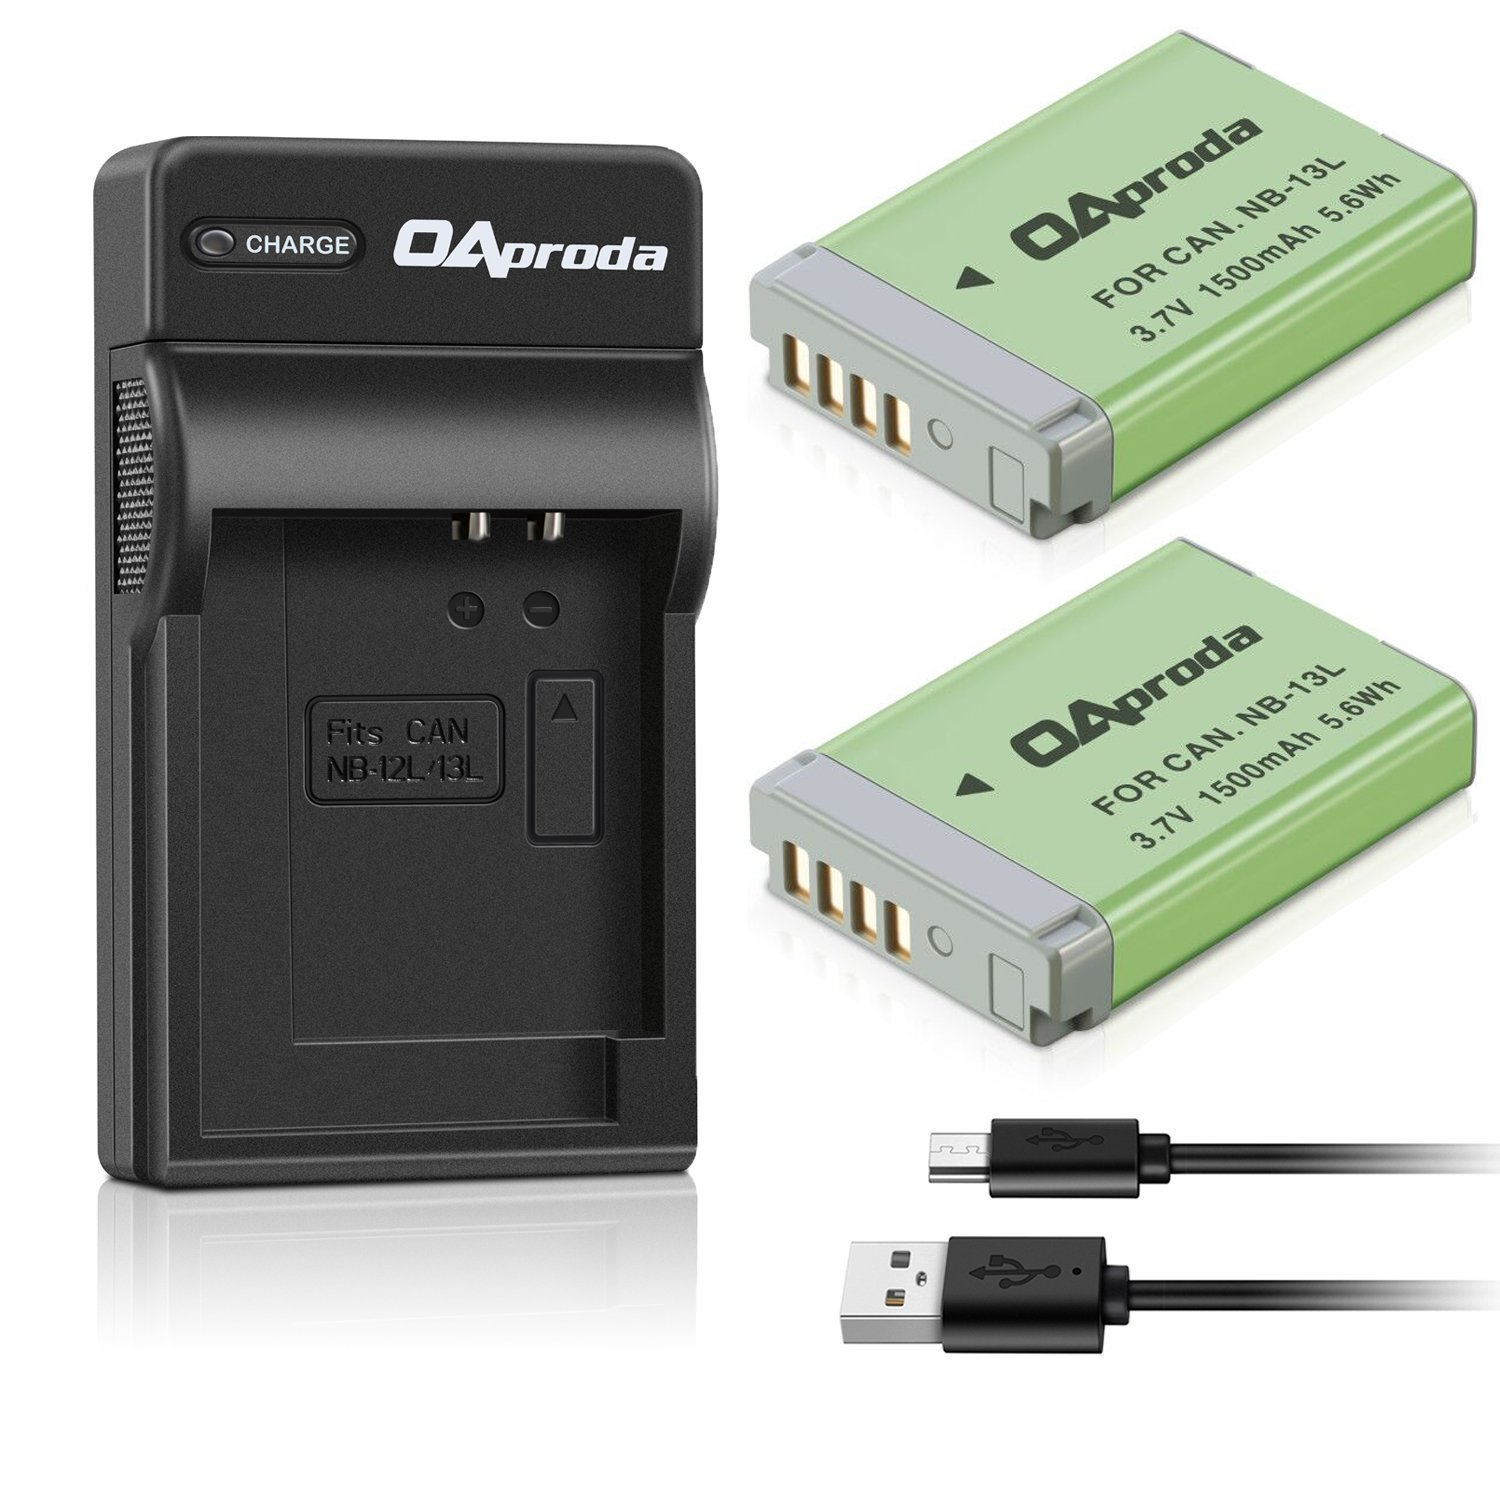 Fully Decoded OAproda NB-13L Battery (2 Pack) and Ultra Slim Micro USB Battery Charger for Canon PowerShot G1 X Mark III, G5 X, G7 X, G7 X Mark II, G9 X, G9X Mark II, SX720 HS,SX730 HS Digital Camera